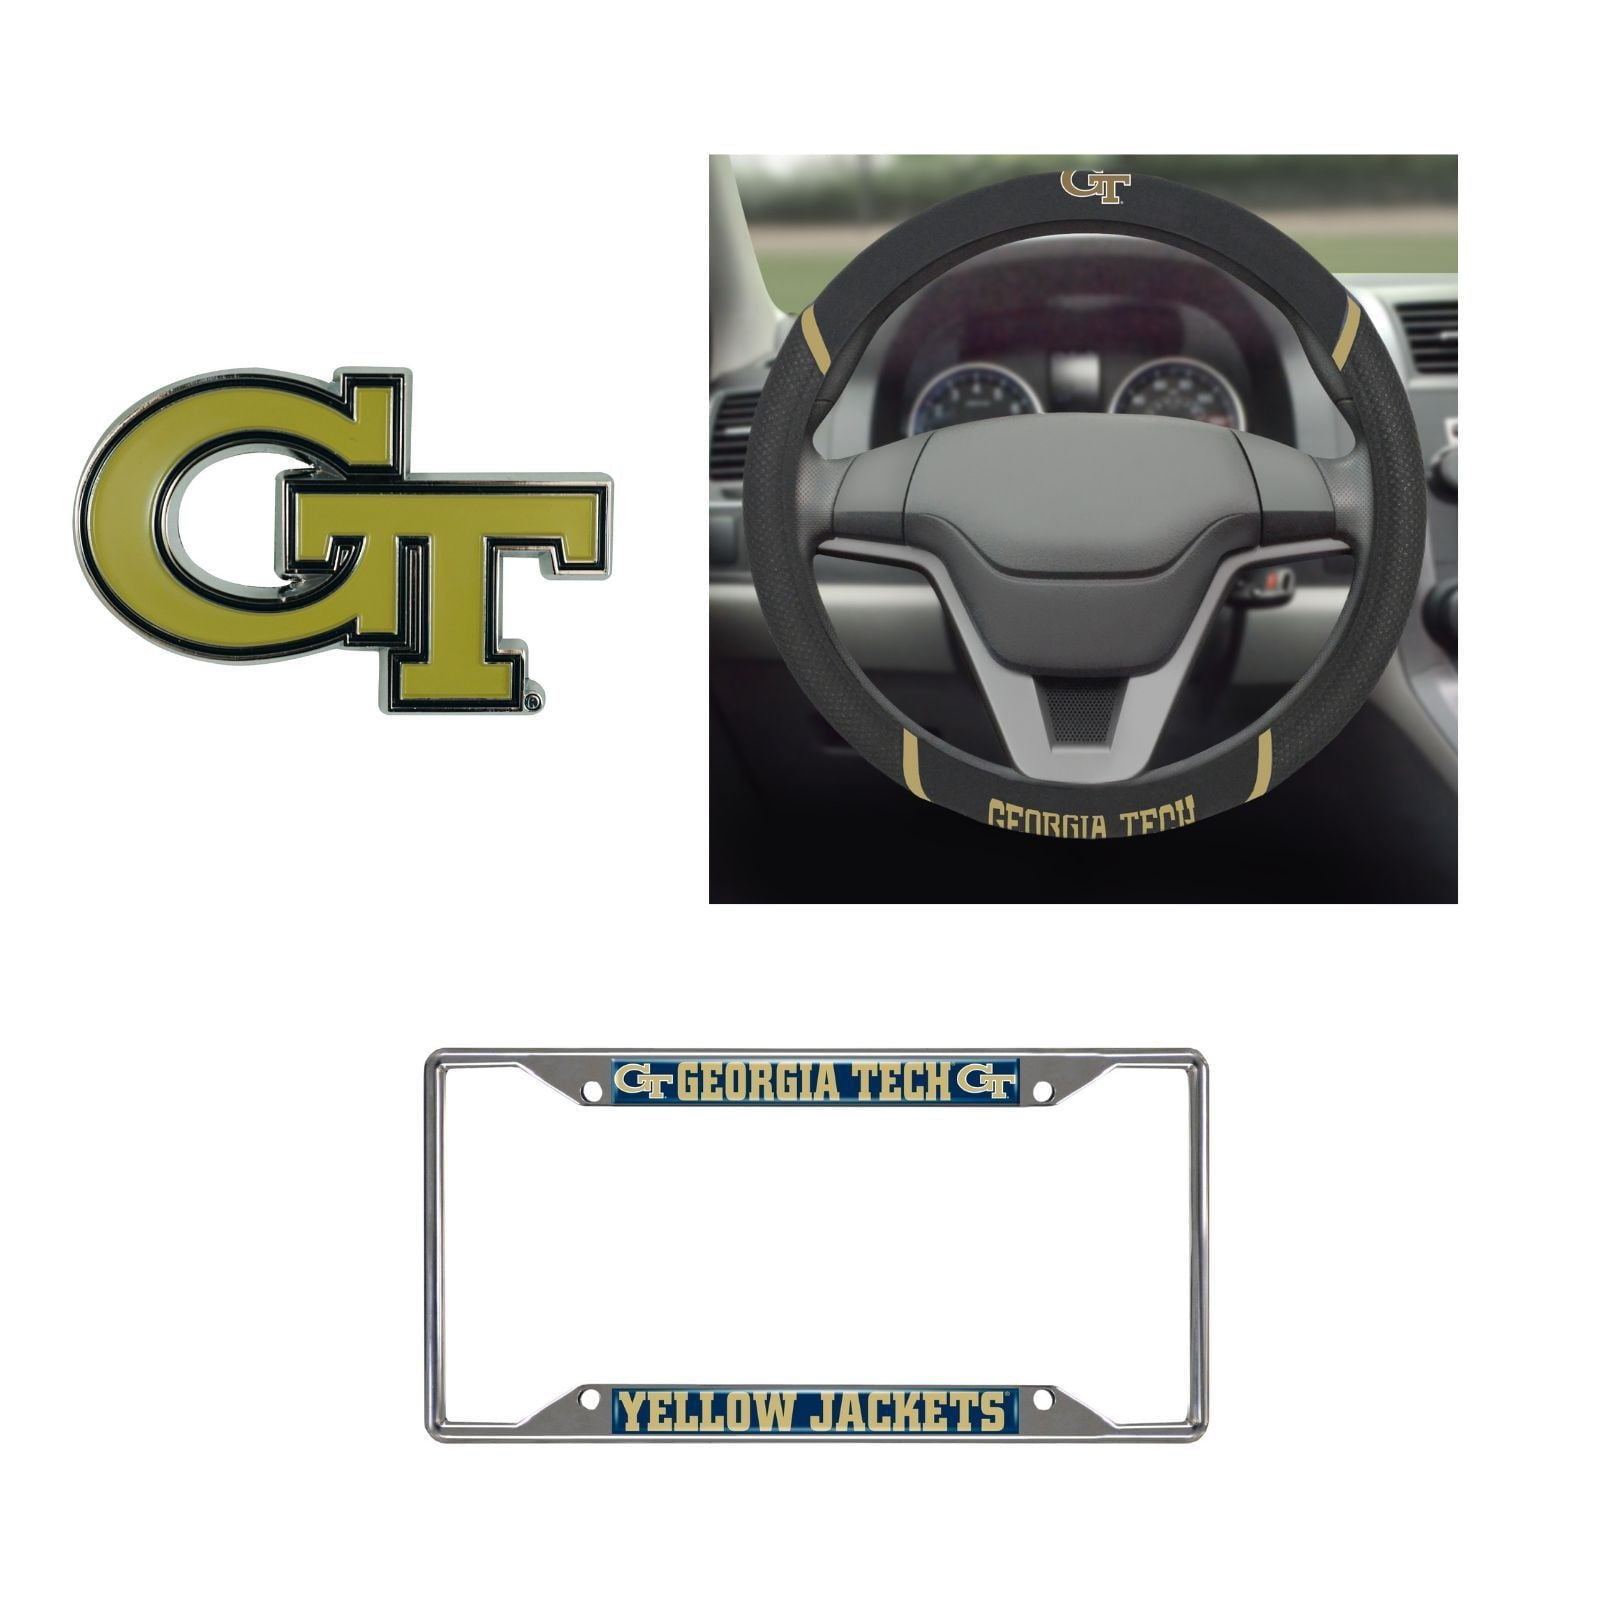 Georgia Tech Yellow Jackets Steering Wheel Cover, License Plate Frame, 3D Color Emblem